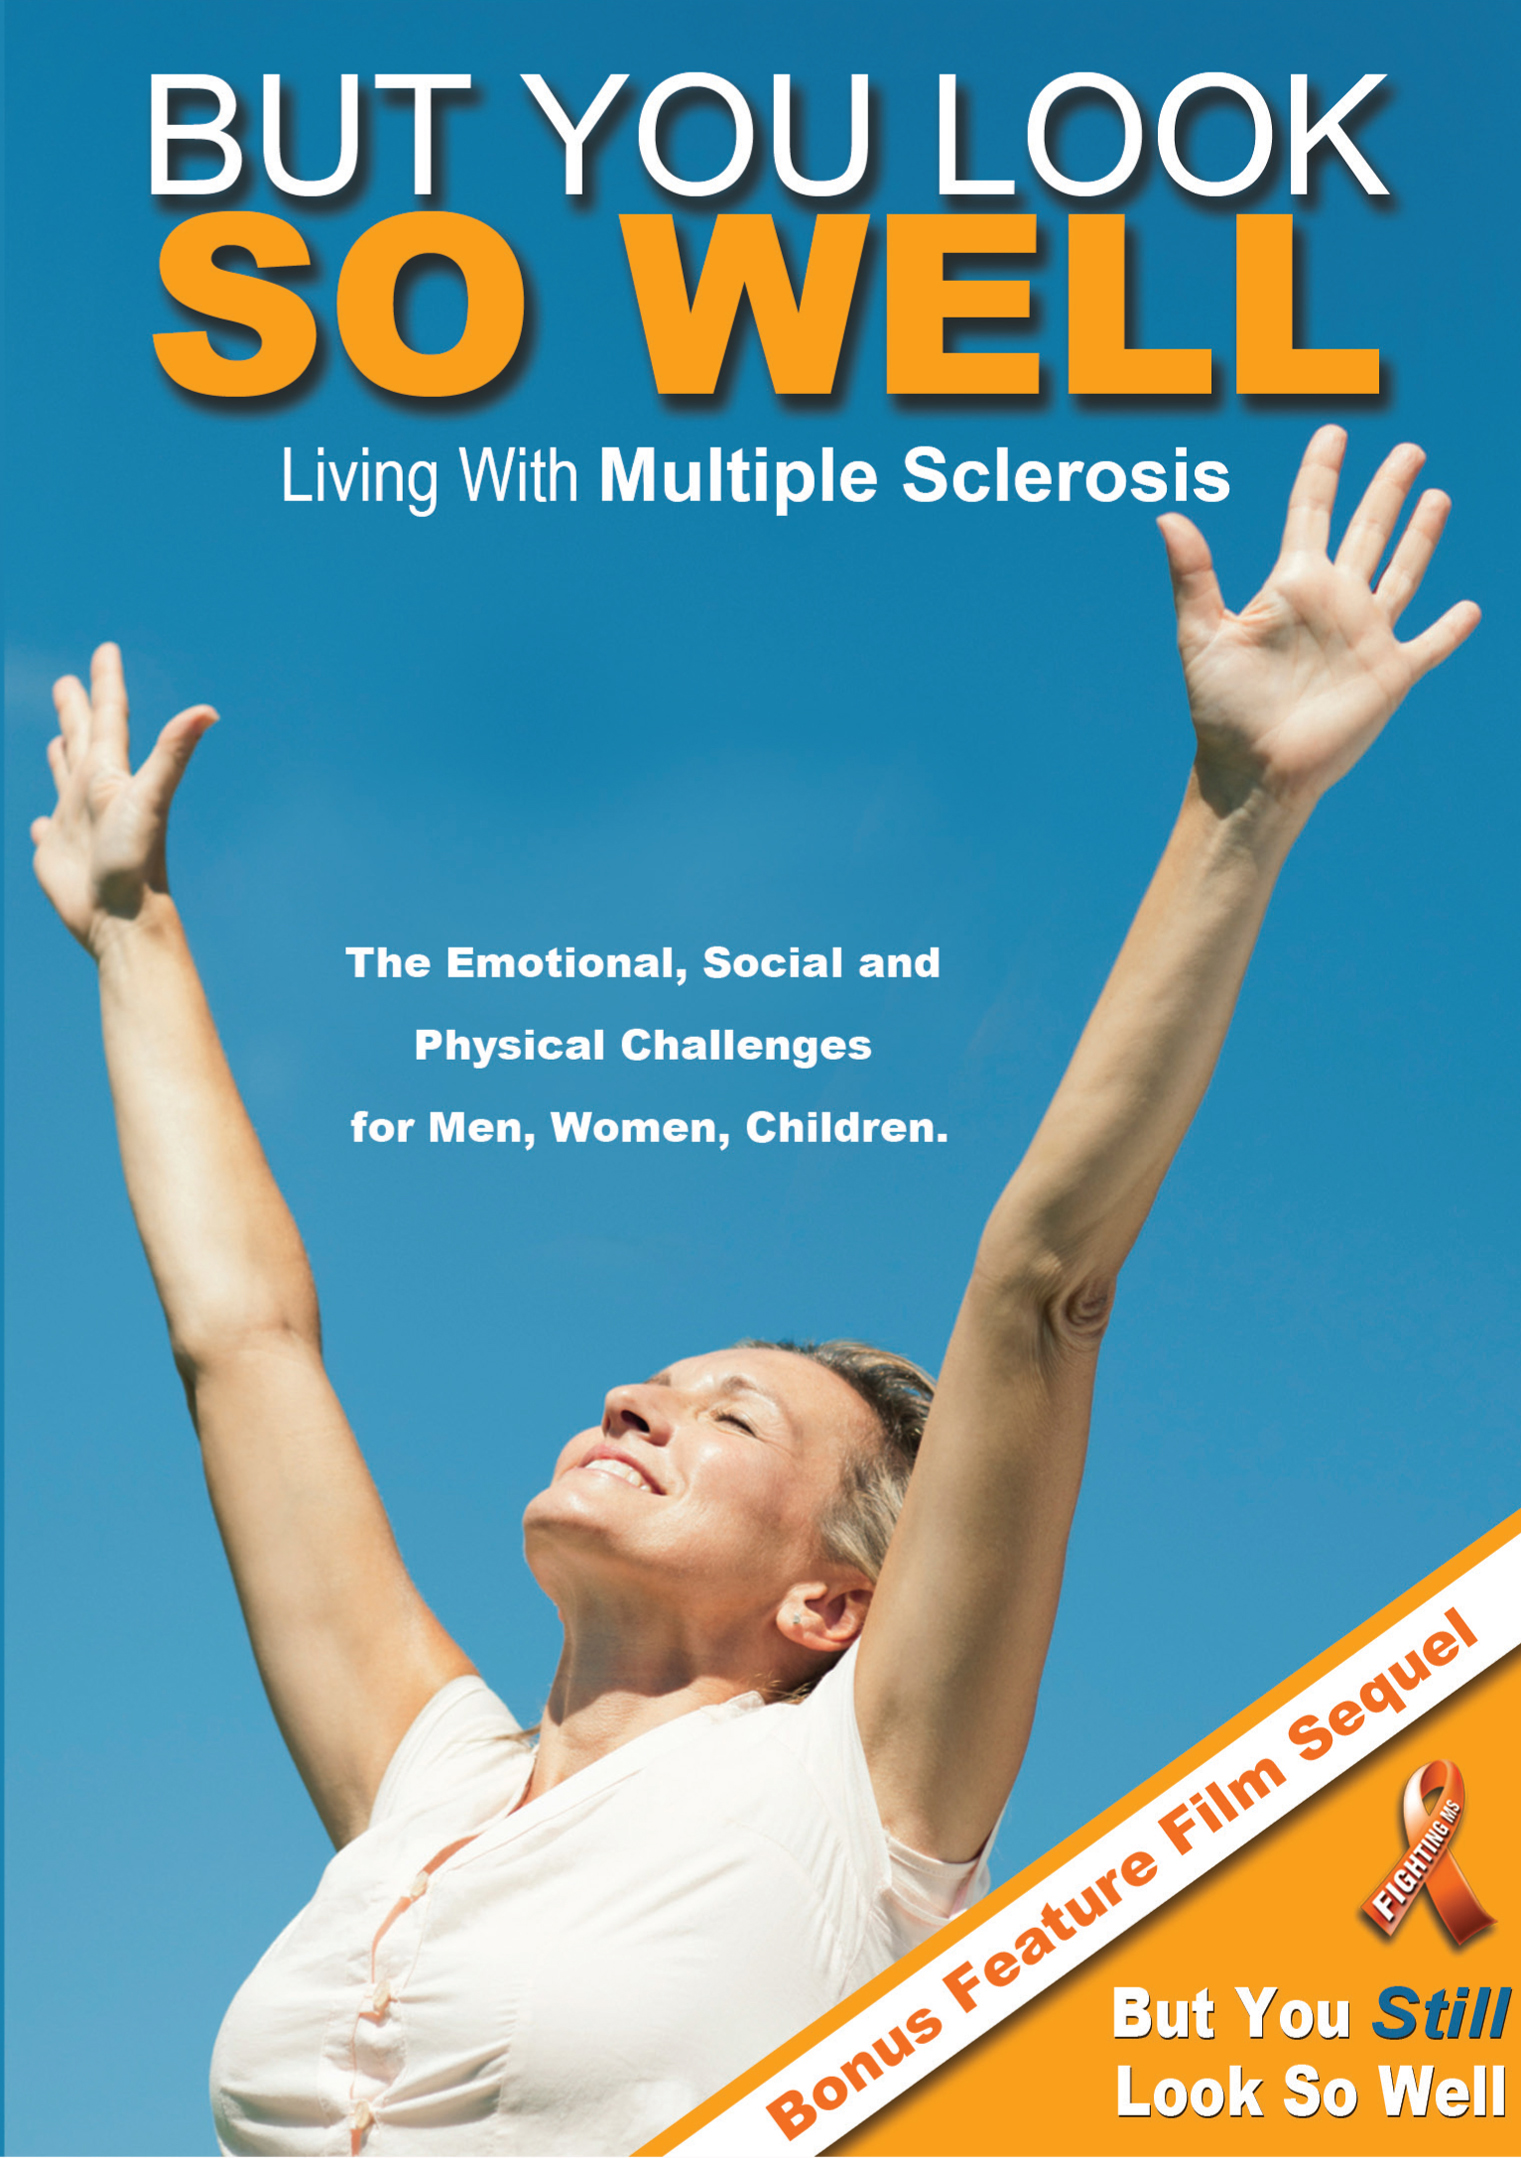 But You Look So Well: Living With Multiple Sclerosis